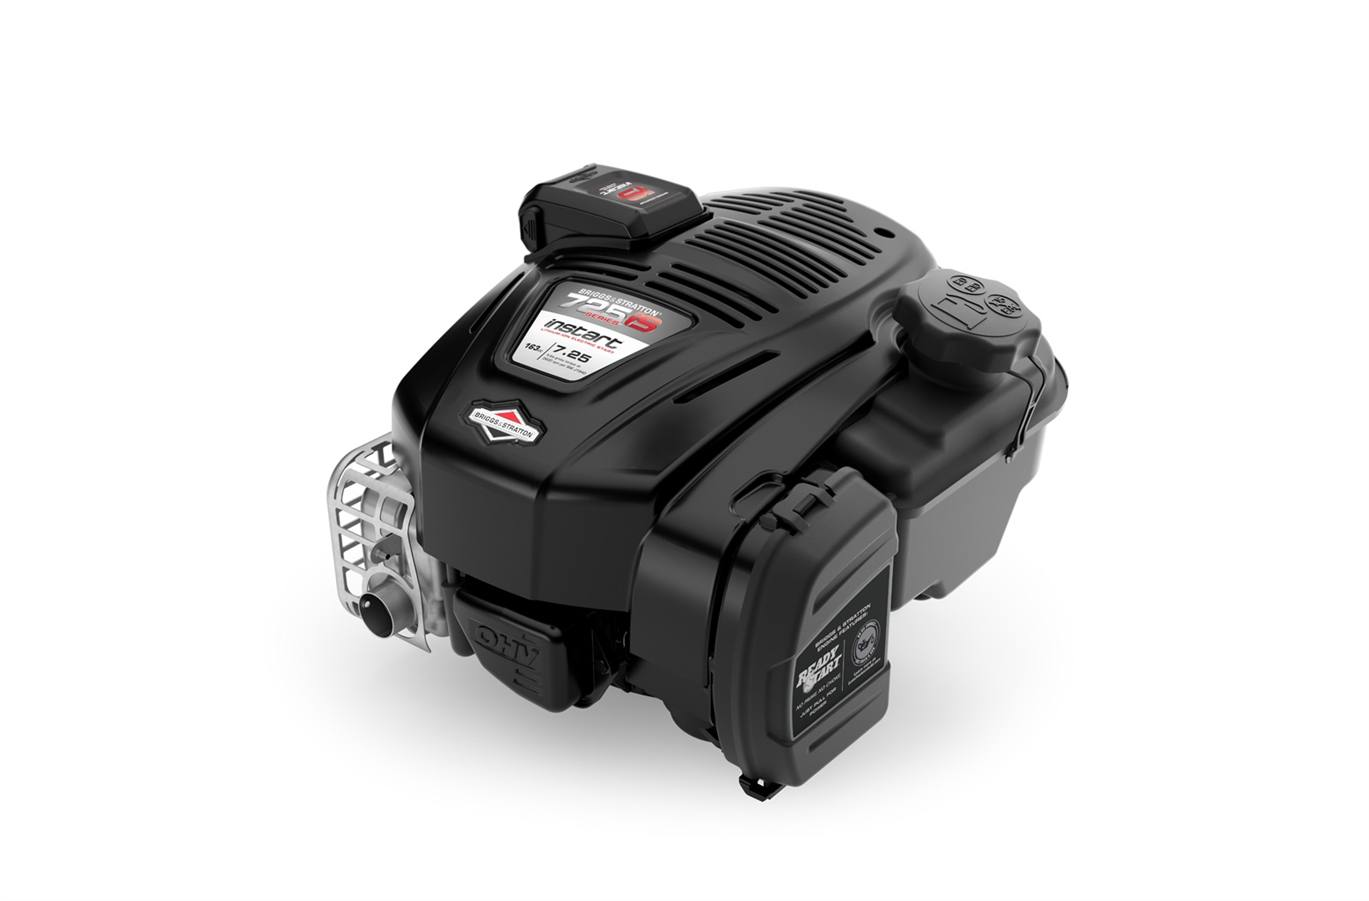 2019 Briggs & Stratton InStart® Series Engine 8 75 ft-lbs Gross